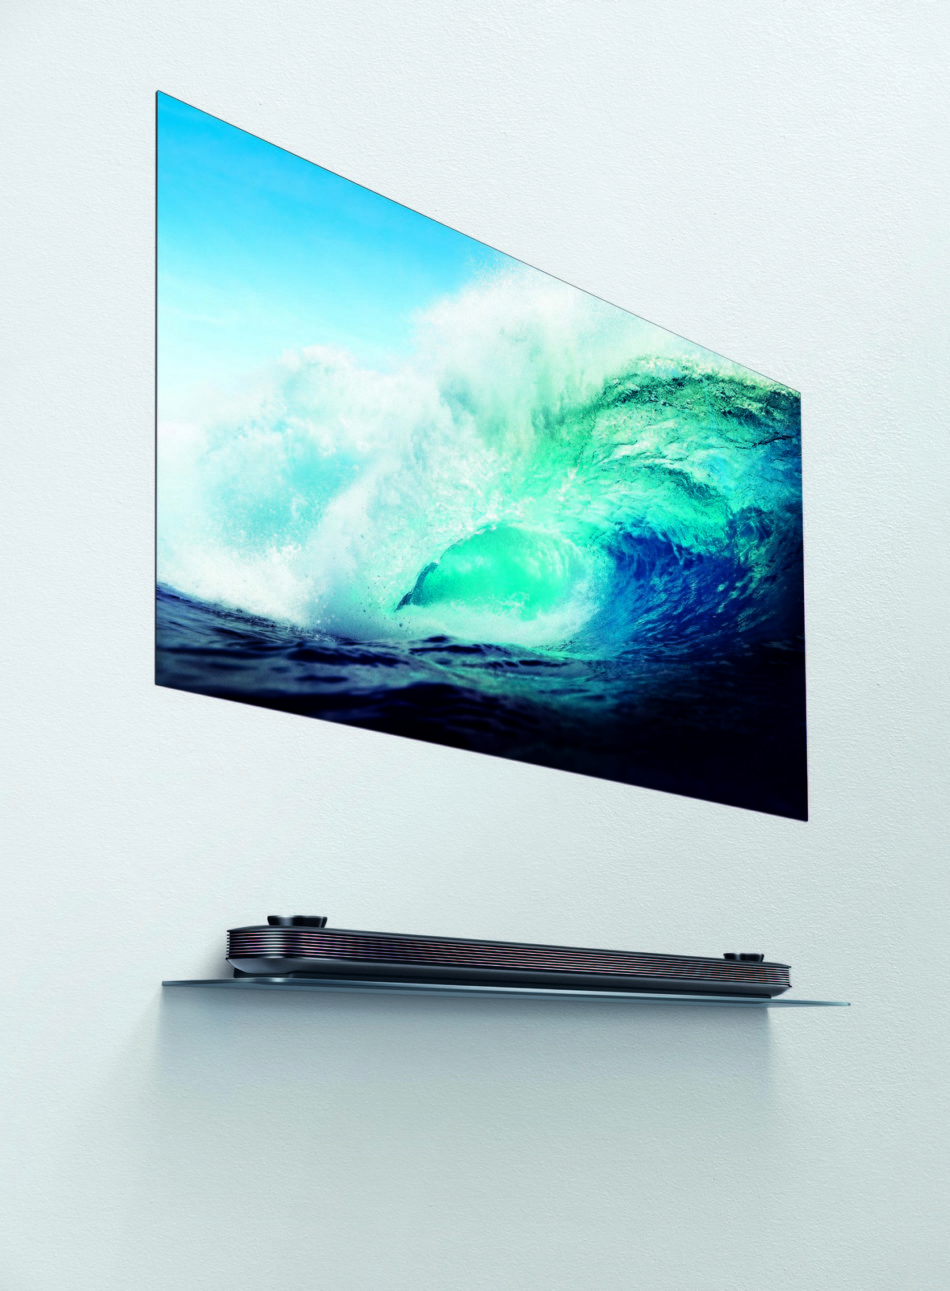 Lg W7 Leads New Oled Tv Lineup In Singapore As Prices Get